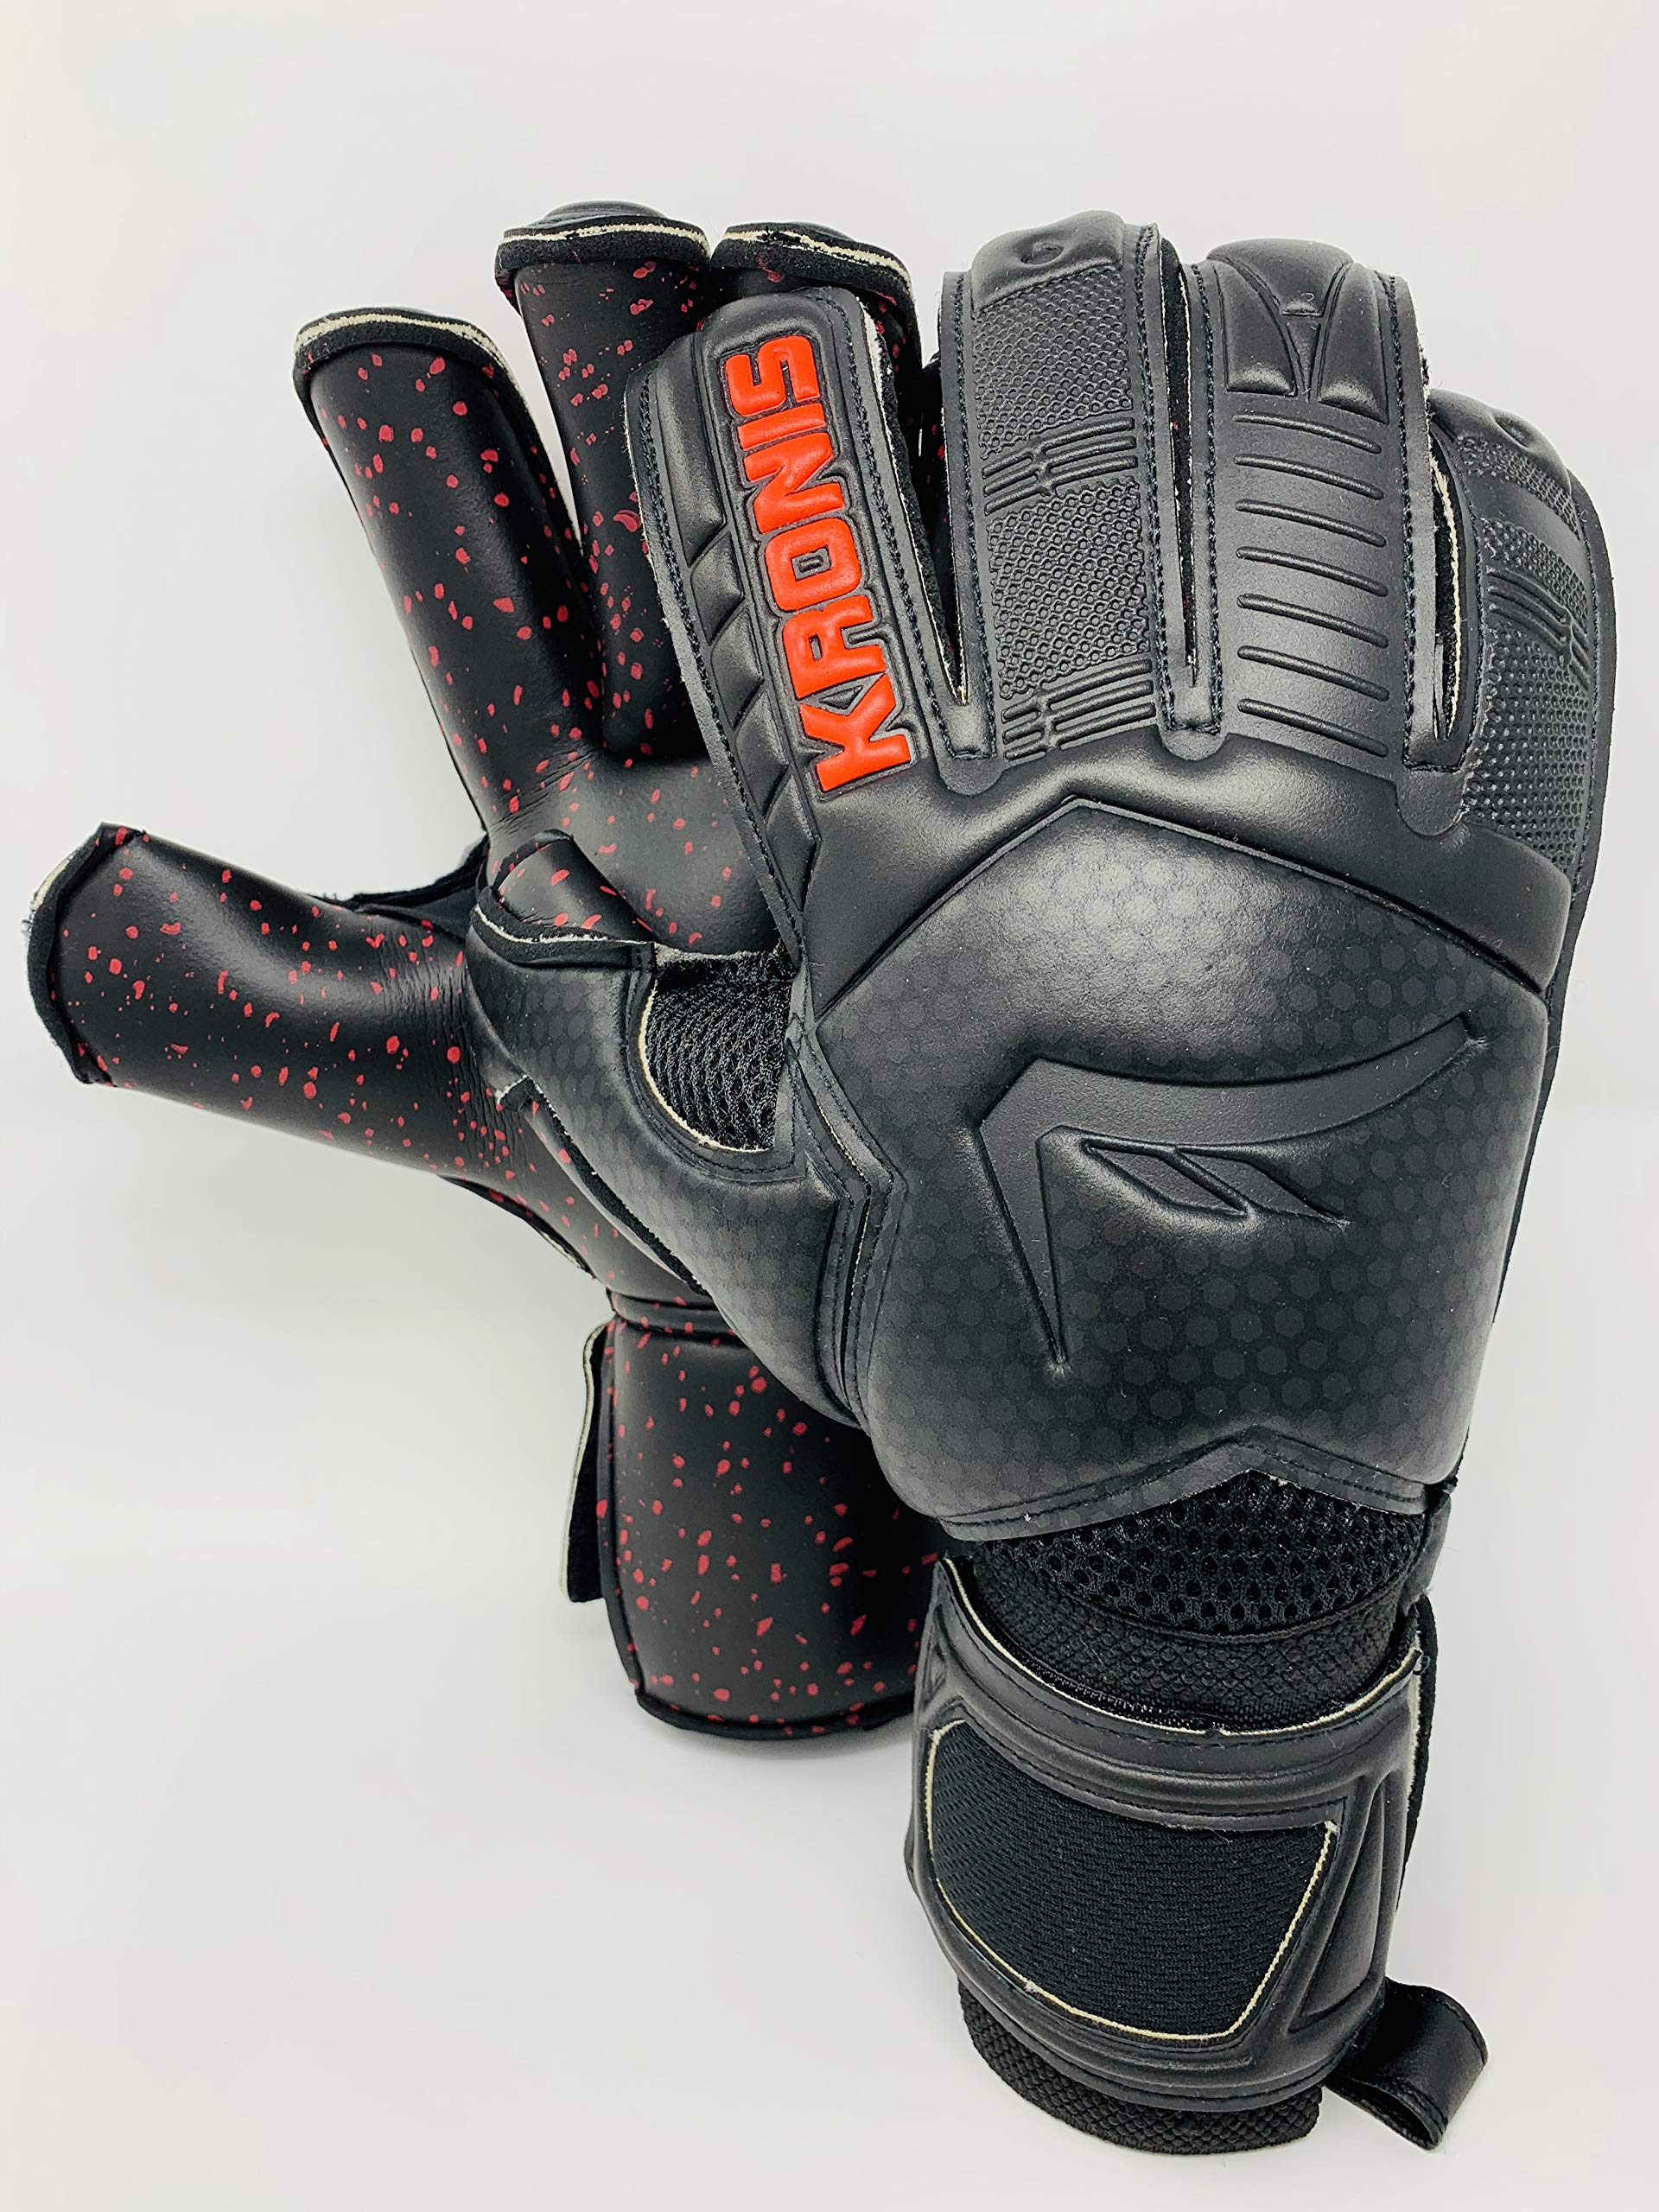 KRONIS Goalkeeper Glove IGNIS Black/Red |Size 4| Professional Level Goalkeeper Gloves| Adult & Youth| Rolled| Designed for top Performance, Durability, Safety, and Comfort